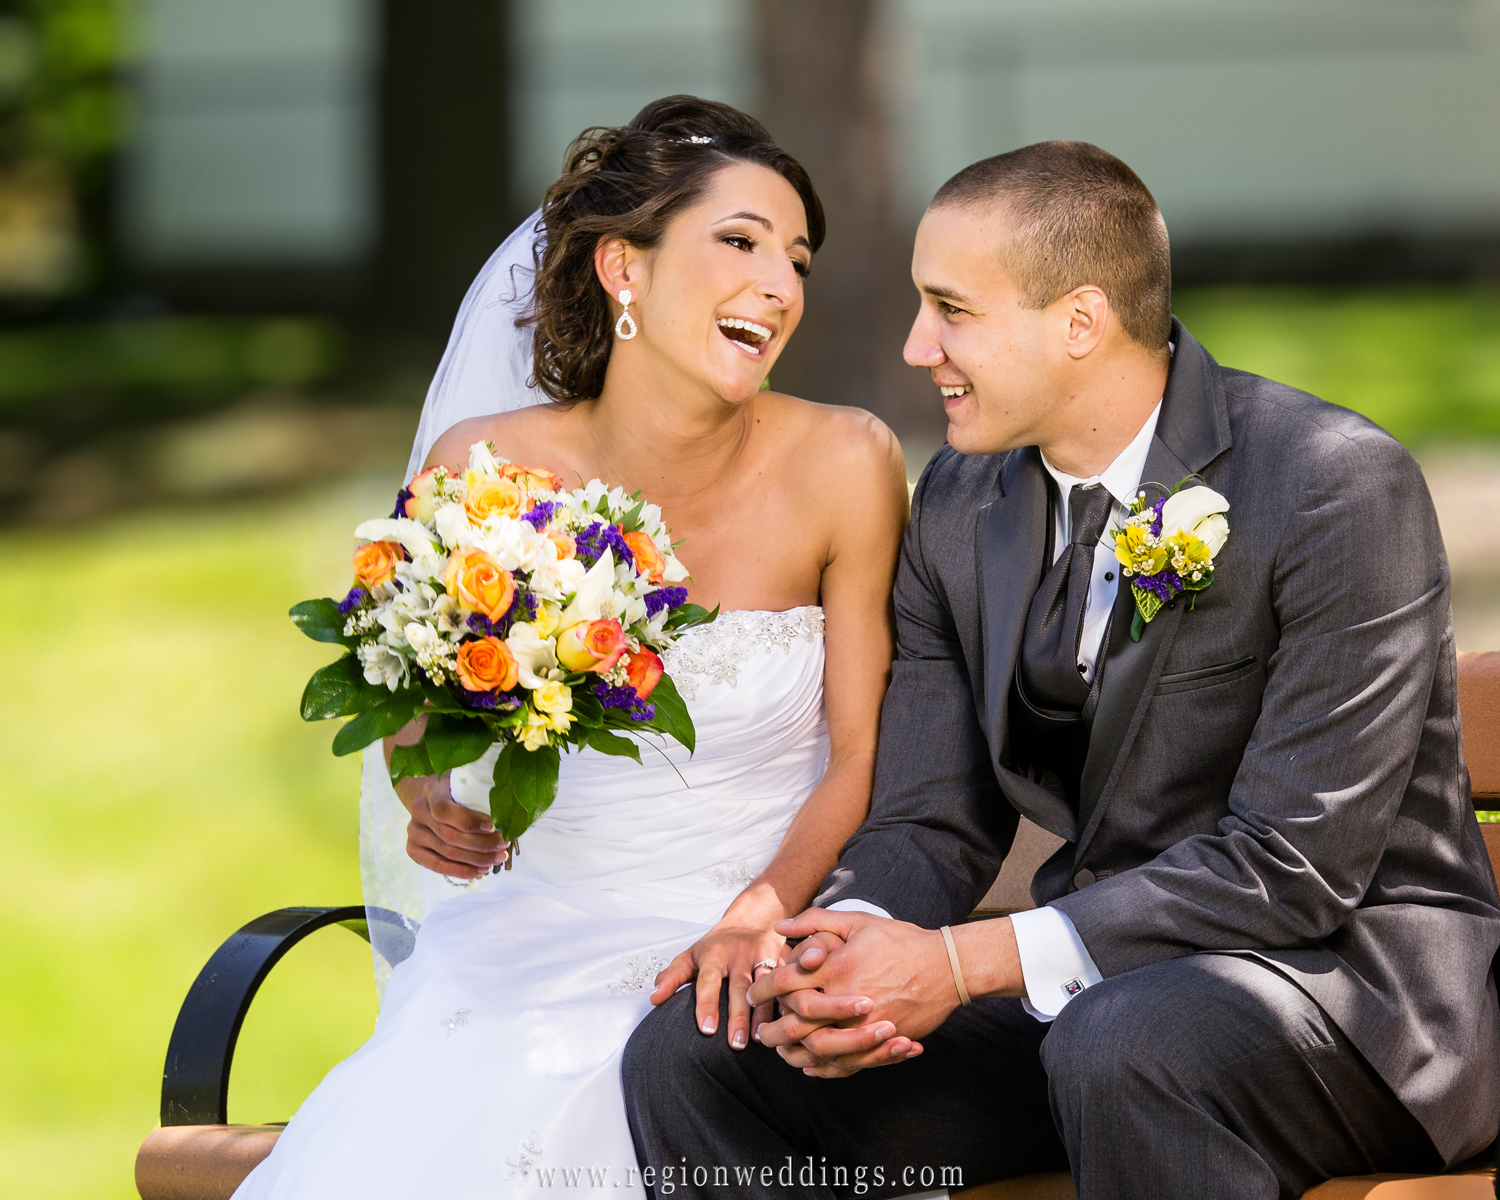 A candid moment between a newly married couple sitting on a park bench in Thornton, Illinois.